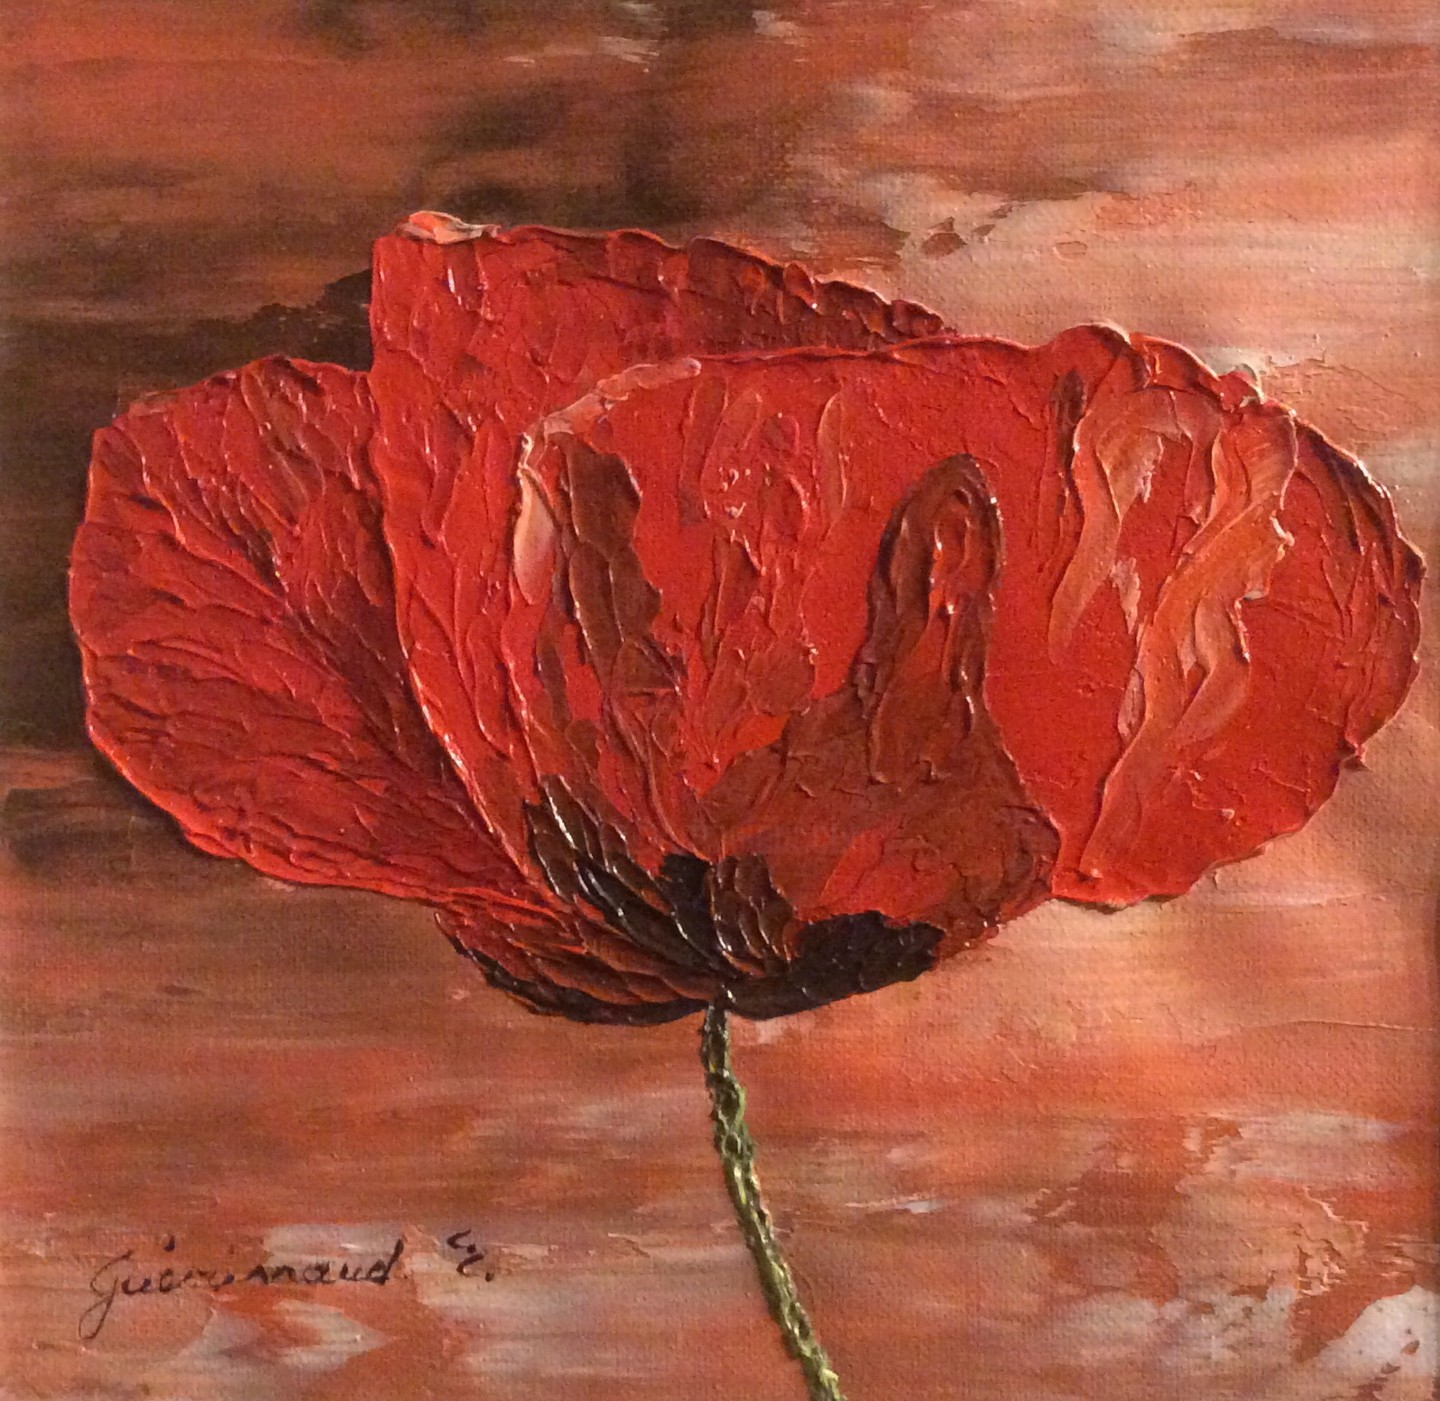 Etienne Guérinaud - Coquelicot rouge (5)